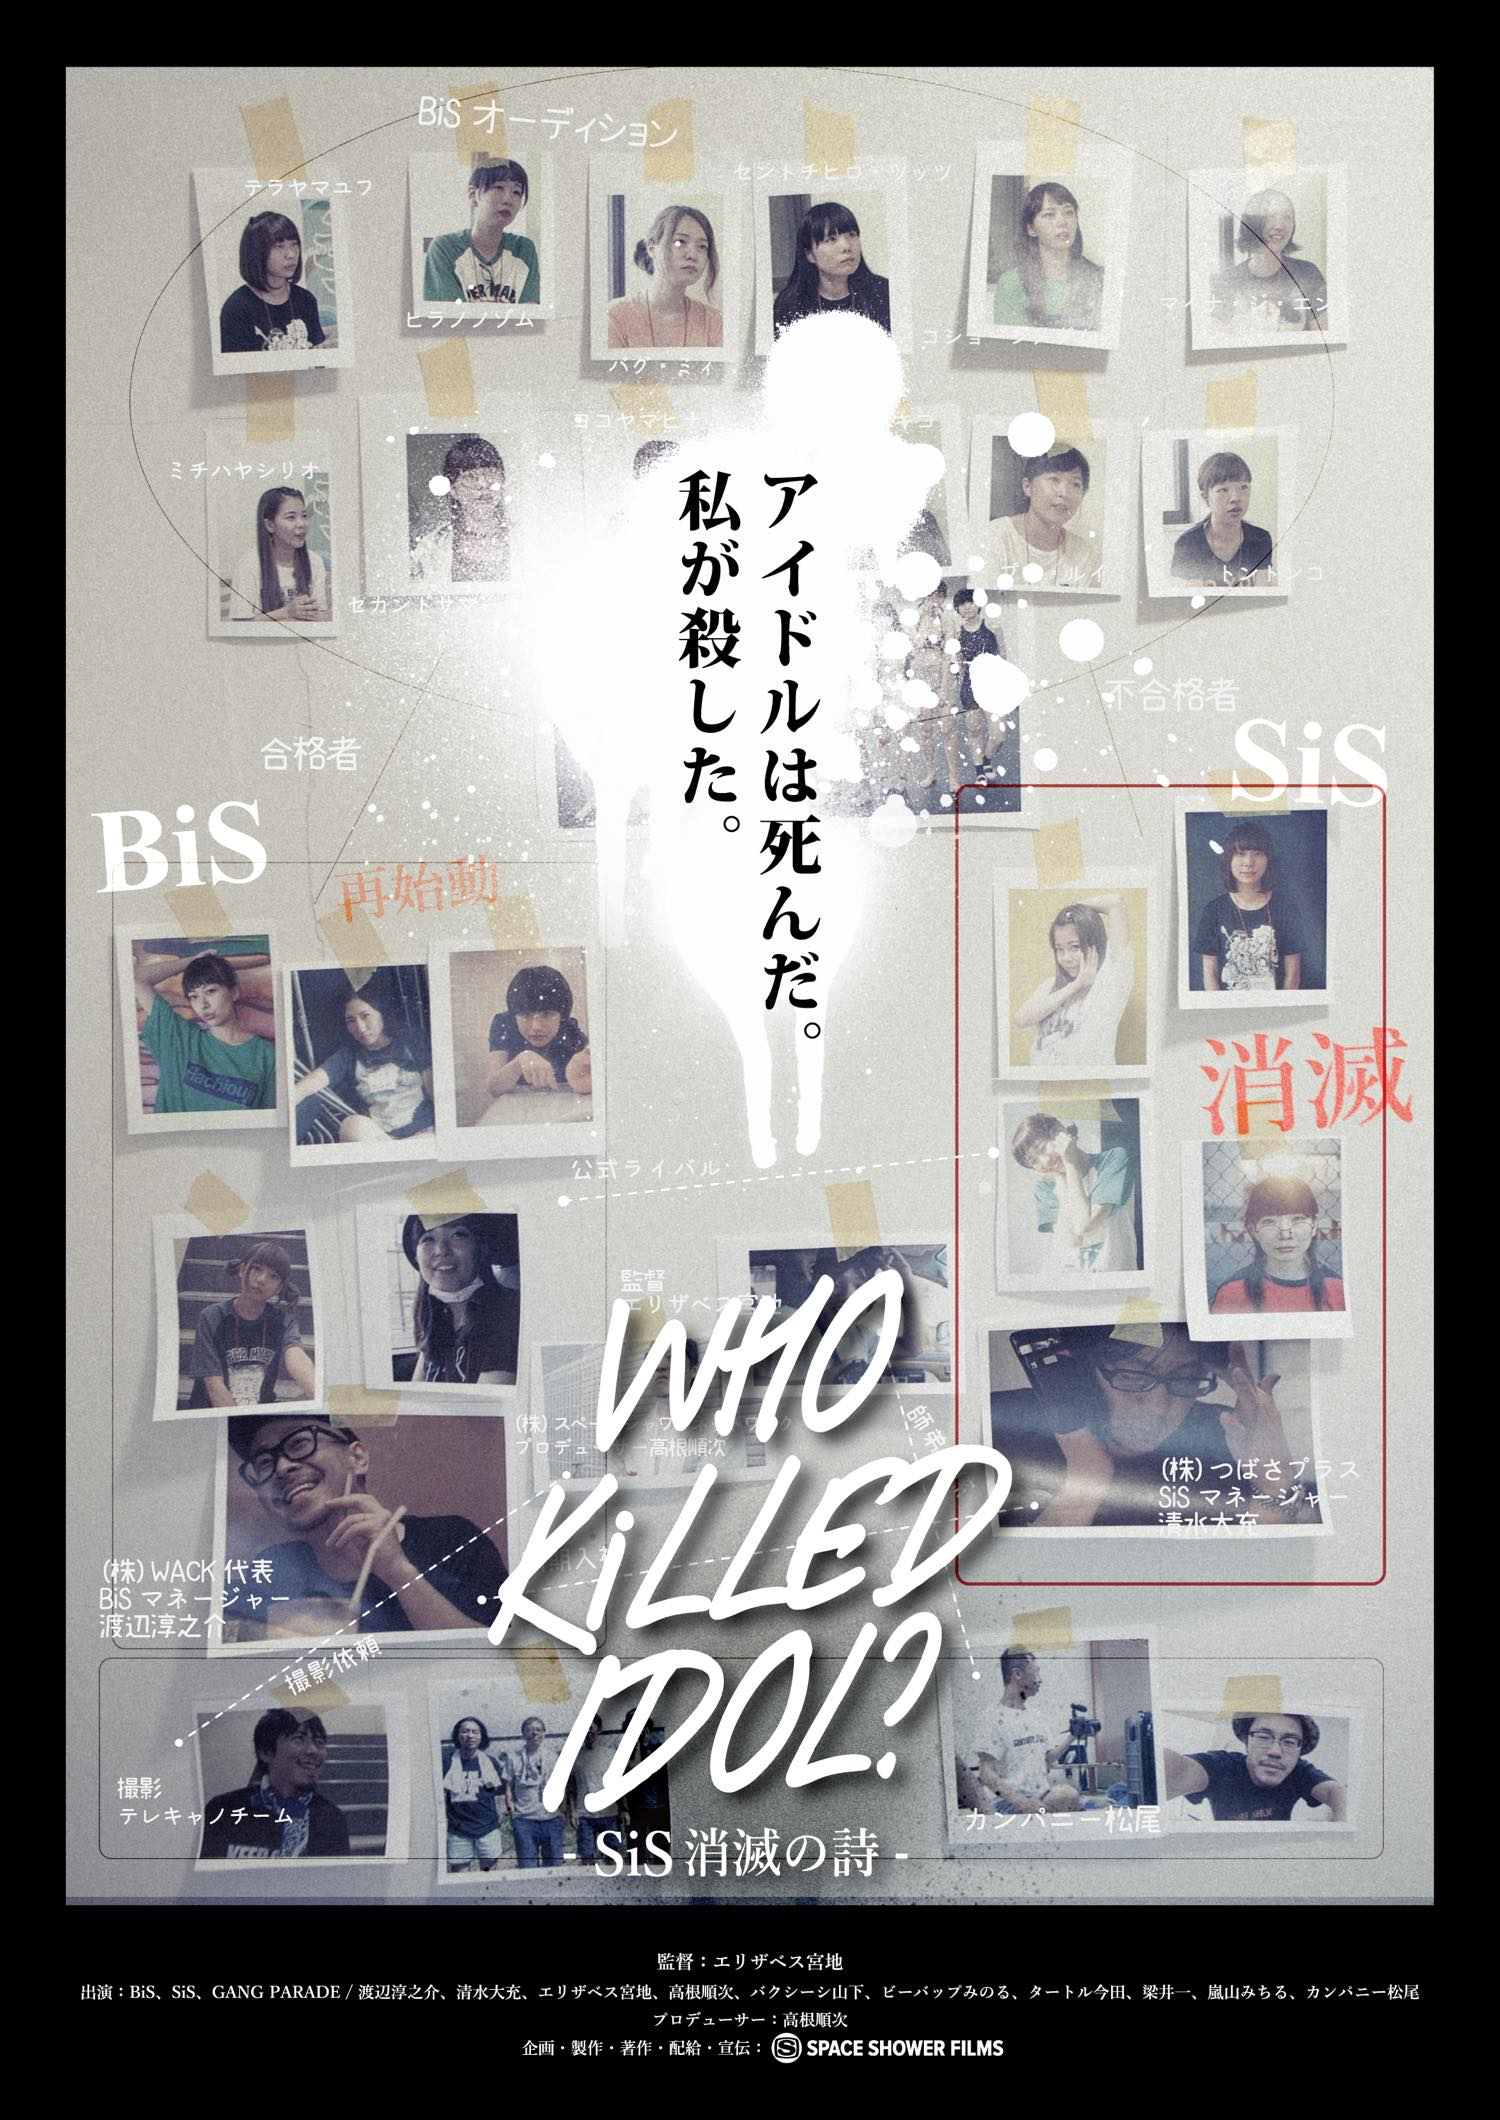 WHO KiLLED IDOL? -SiS Shoumetsu no Uta-